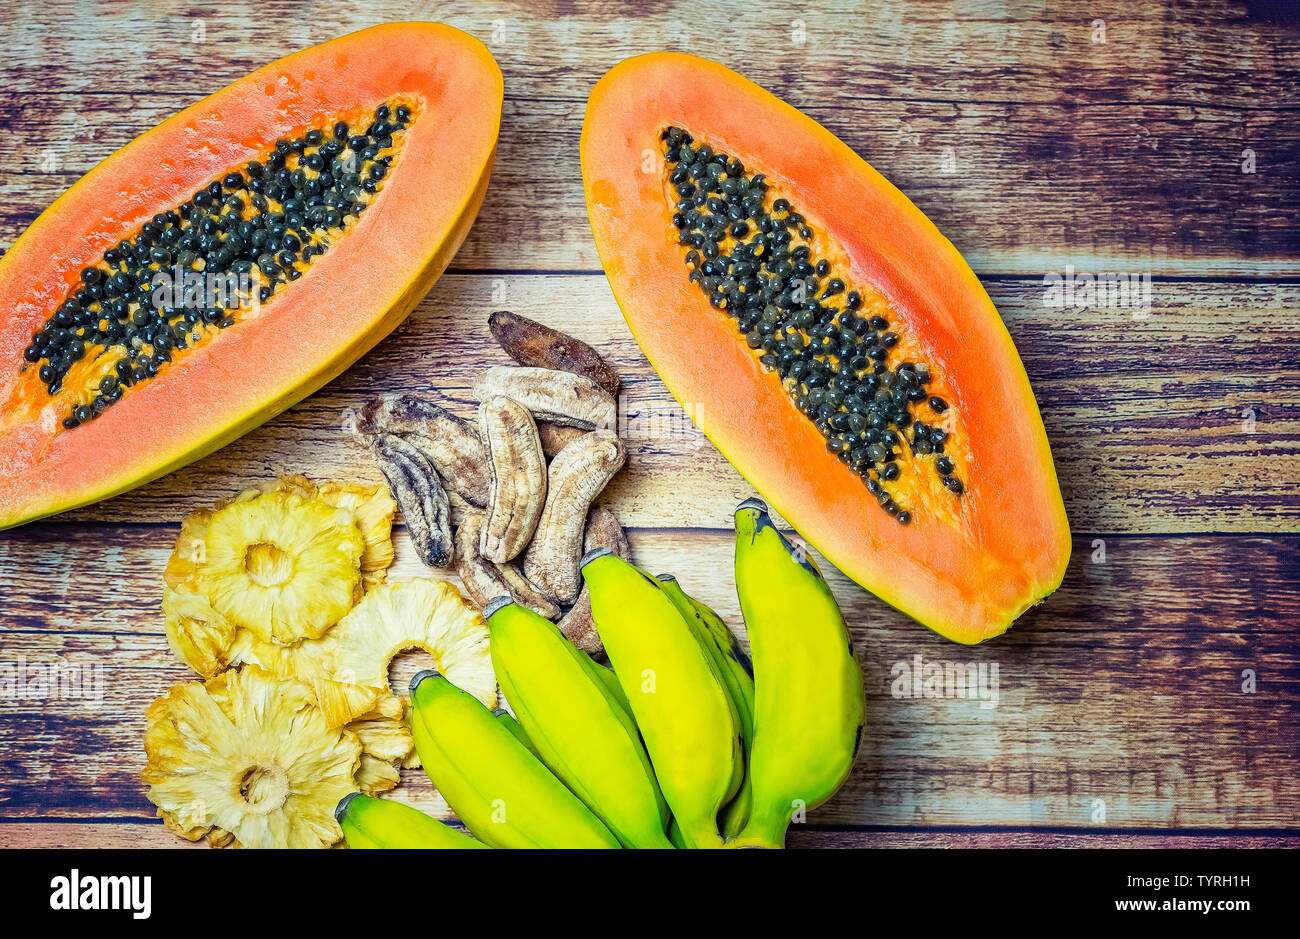 Pawpaw Africa Stock Photos & Pawpaw Africa Stock Images - Alamy